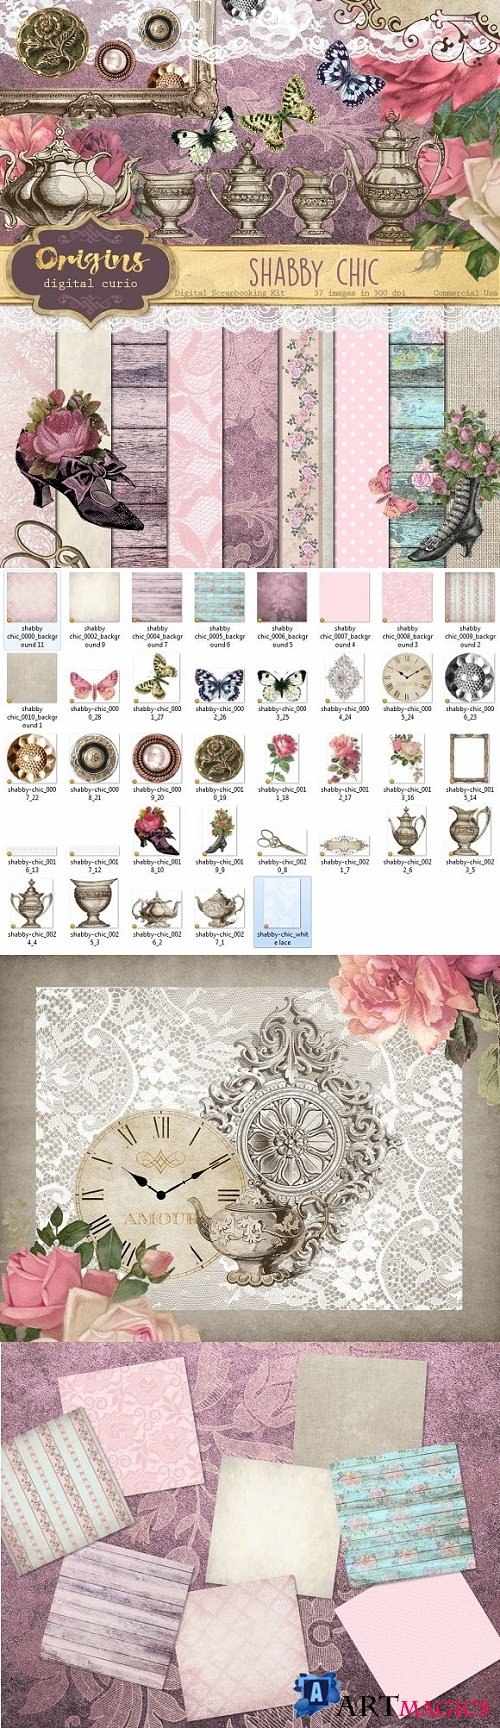 Shabby Chic Digital Scrapbooking Kit - 955585